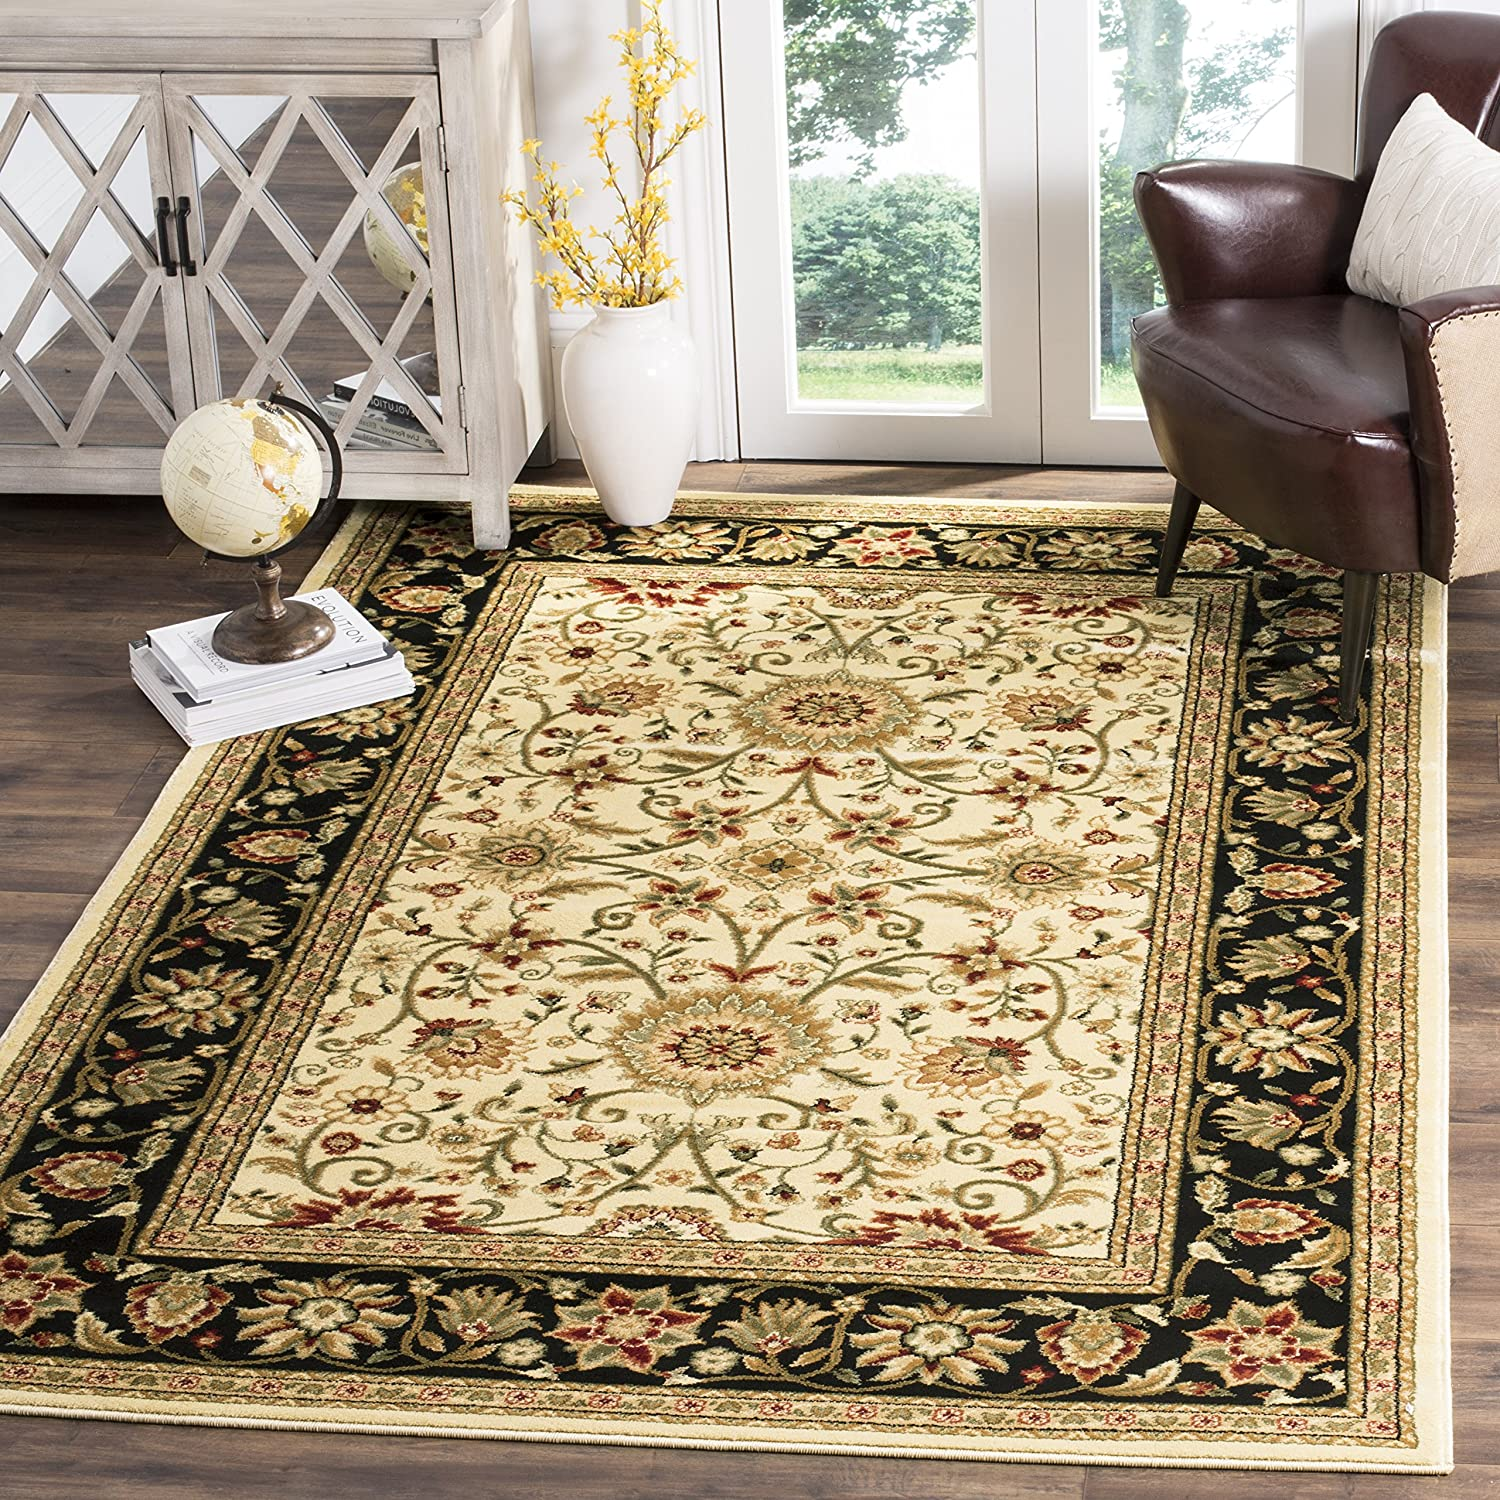 Safavieh Lyndhurst Collection LNH212J Traditional Oriental Grey and Beige Area Rug (2'3